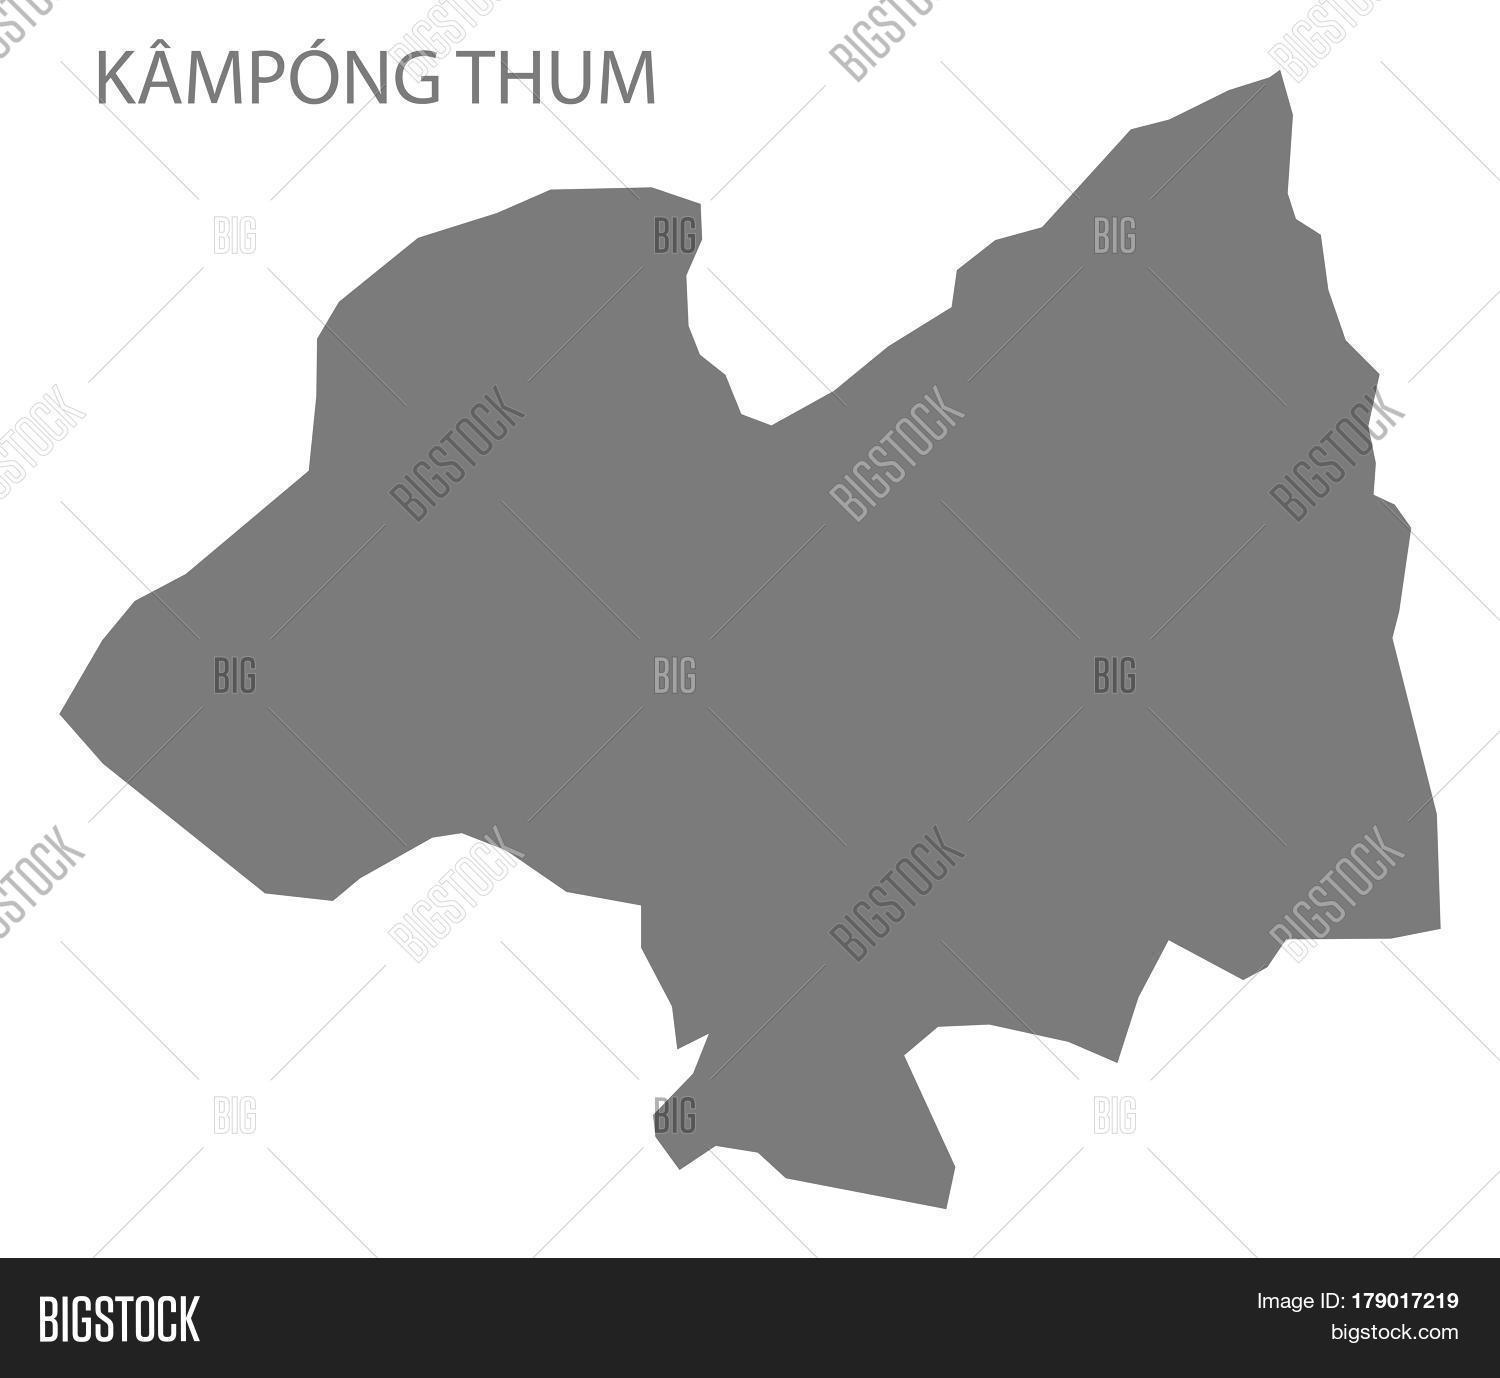 Kampong,Thum,administrative,area,border,cambodia,country,county,department,design,districts,division,flat,graphic,grey,illustration,isolated,map,modern,new,province,region,regional,shape,silhouette,simple,state,territory,trip